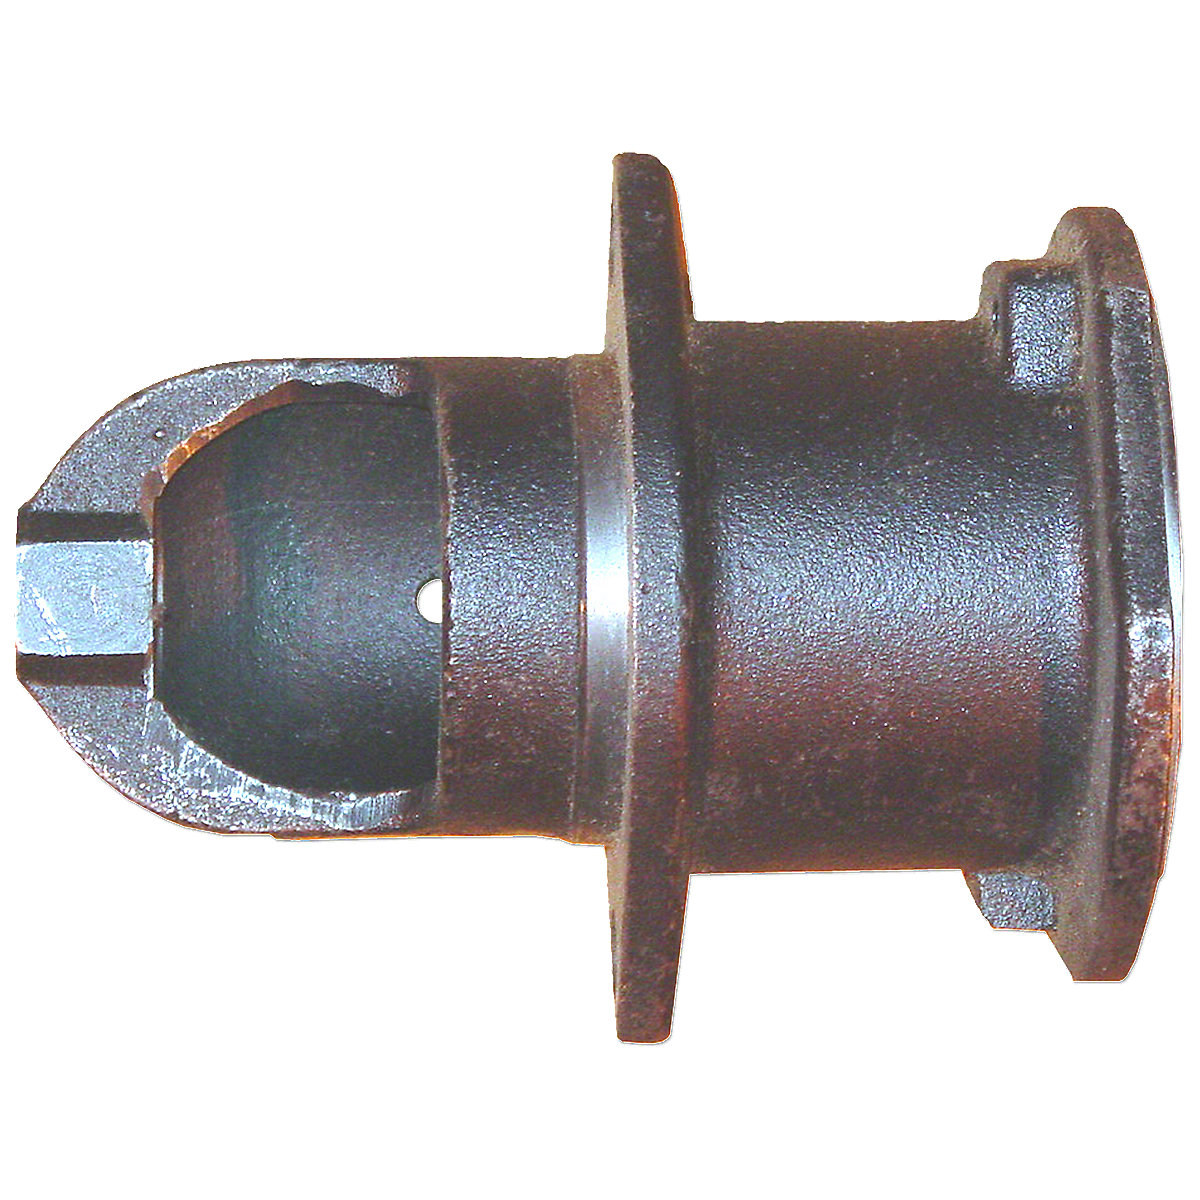 Starter Nosecone For Massey Ferguson: 40, TO30, TO35, 50, 35, 50, 65, Massey Harris: 50.